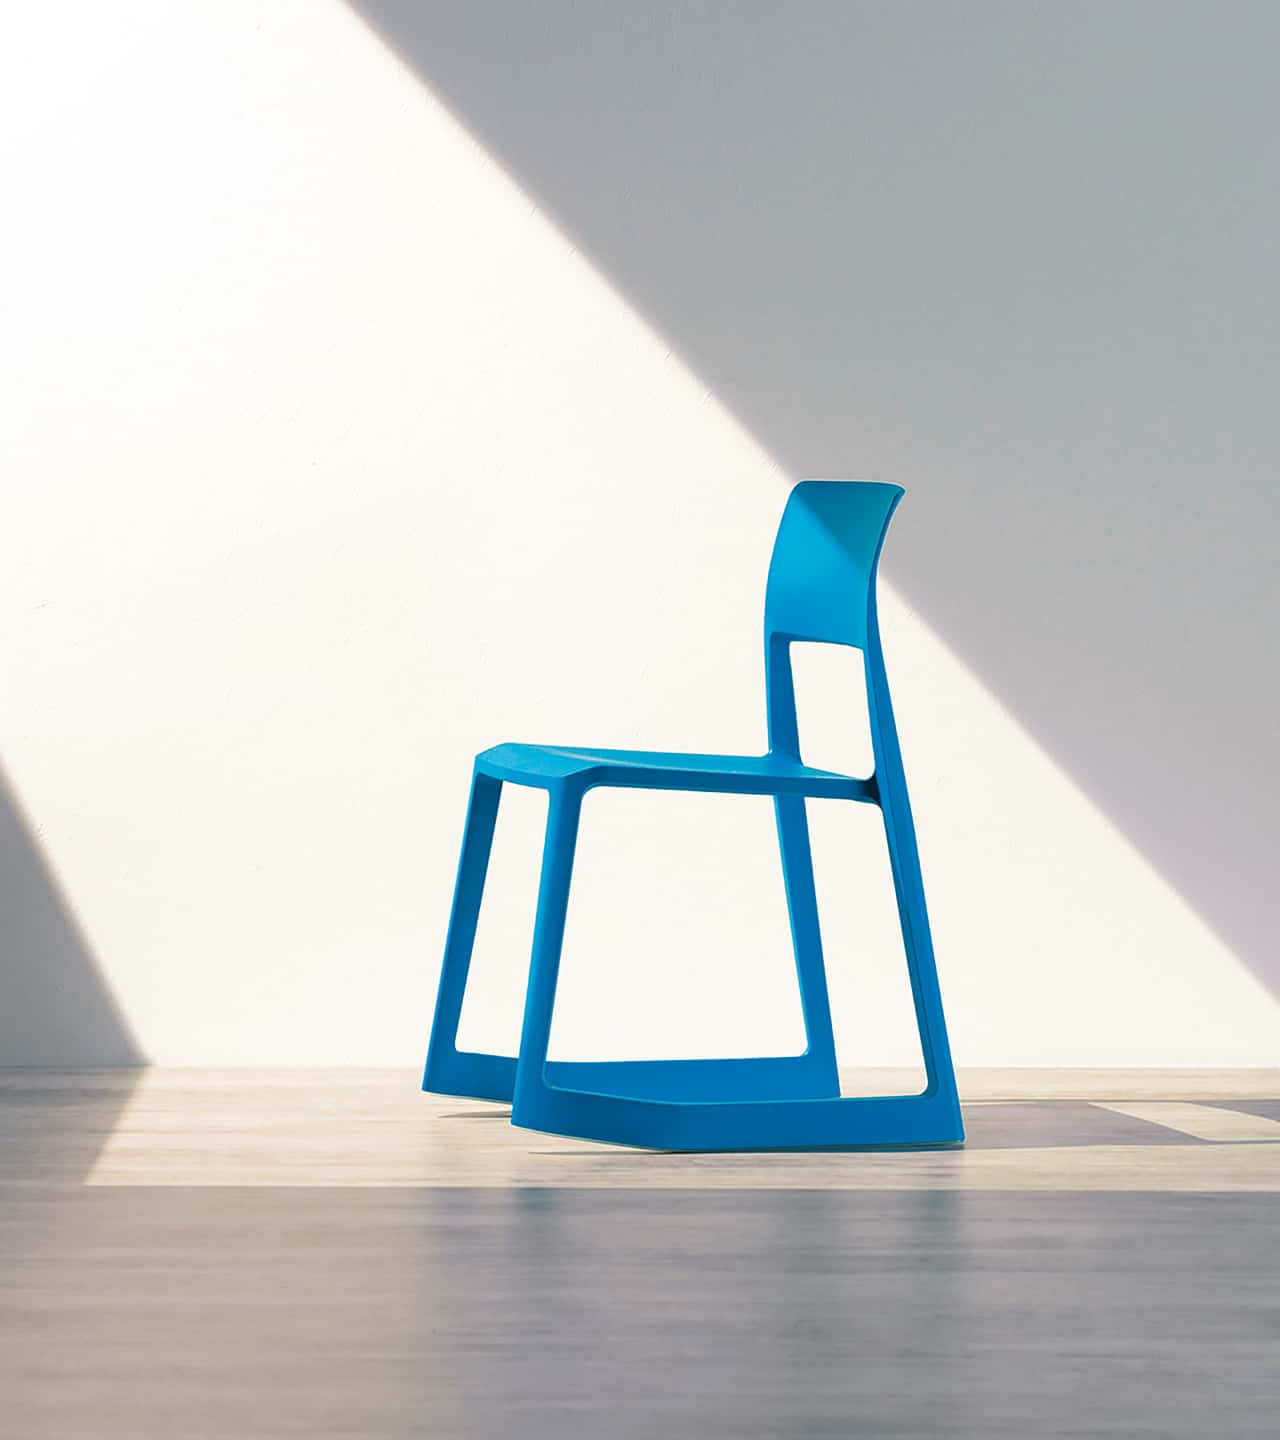 https://www.millharbour.co.uk/wp-content/uploads/2020/08/Mill-Harbour-Barber-Osgerby-Blue-Chair.jpg